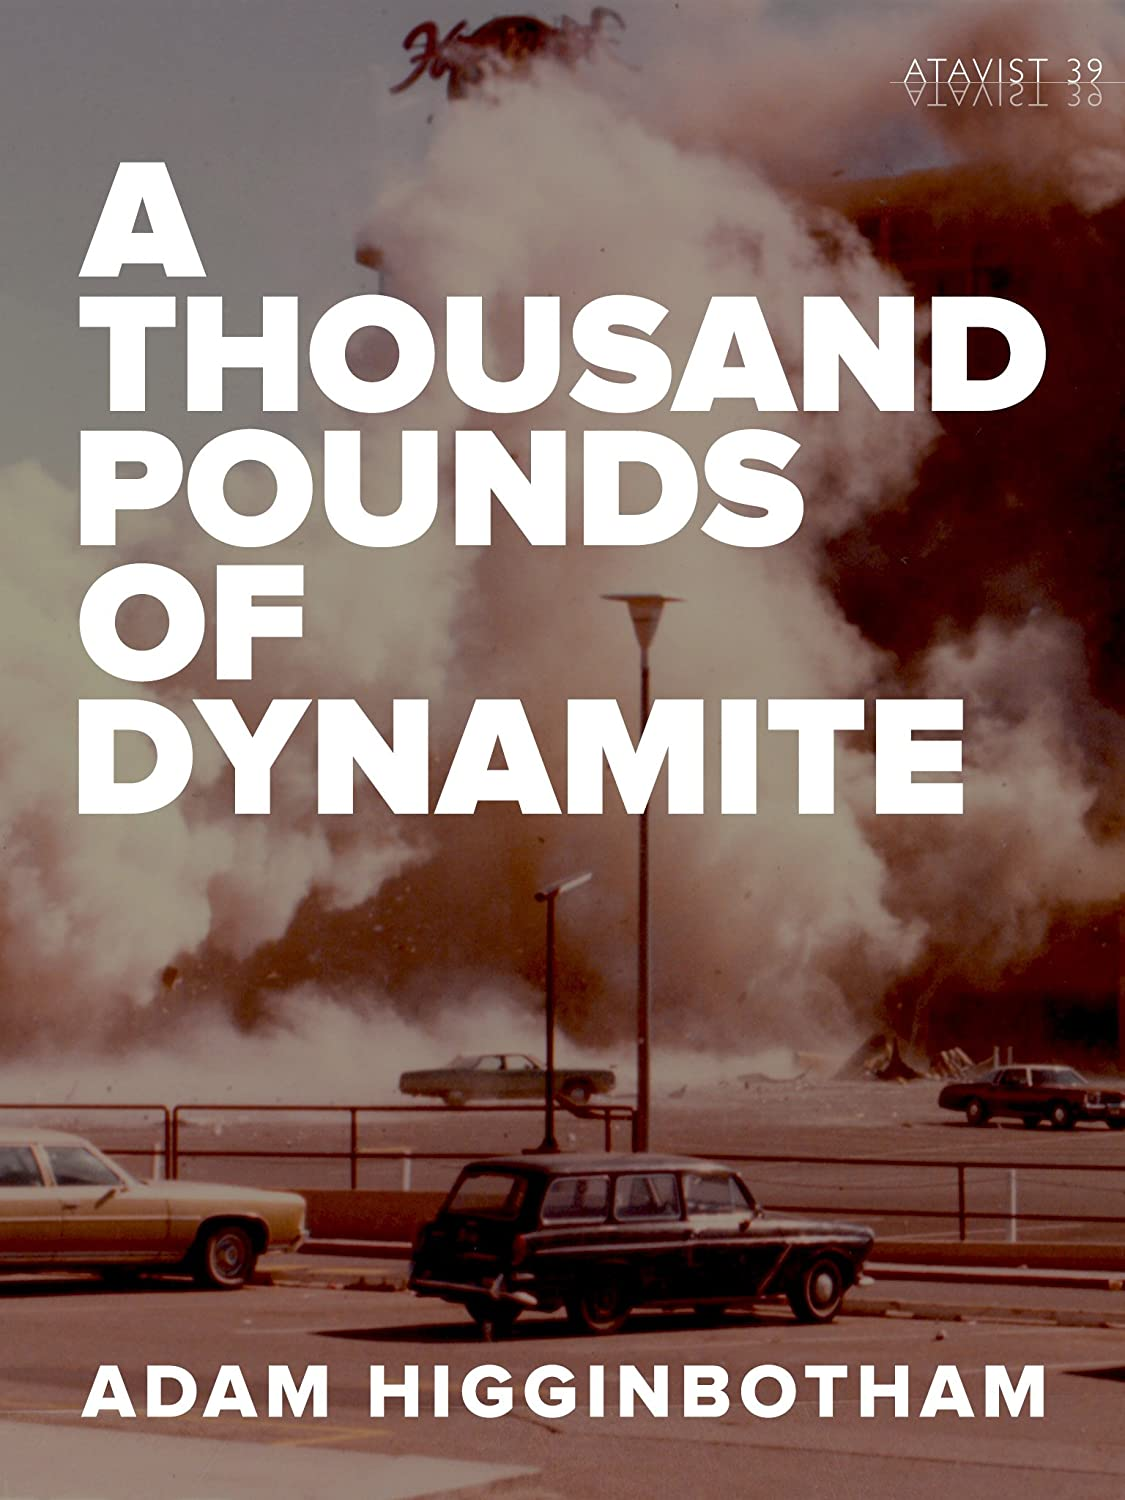 A Thousand Pounds of Dynamite by Adam Higginbotham